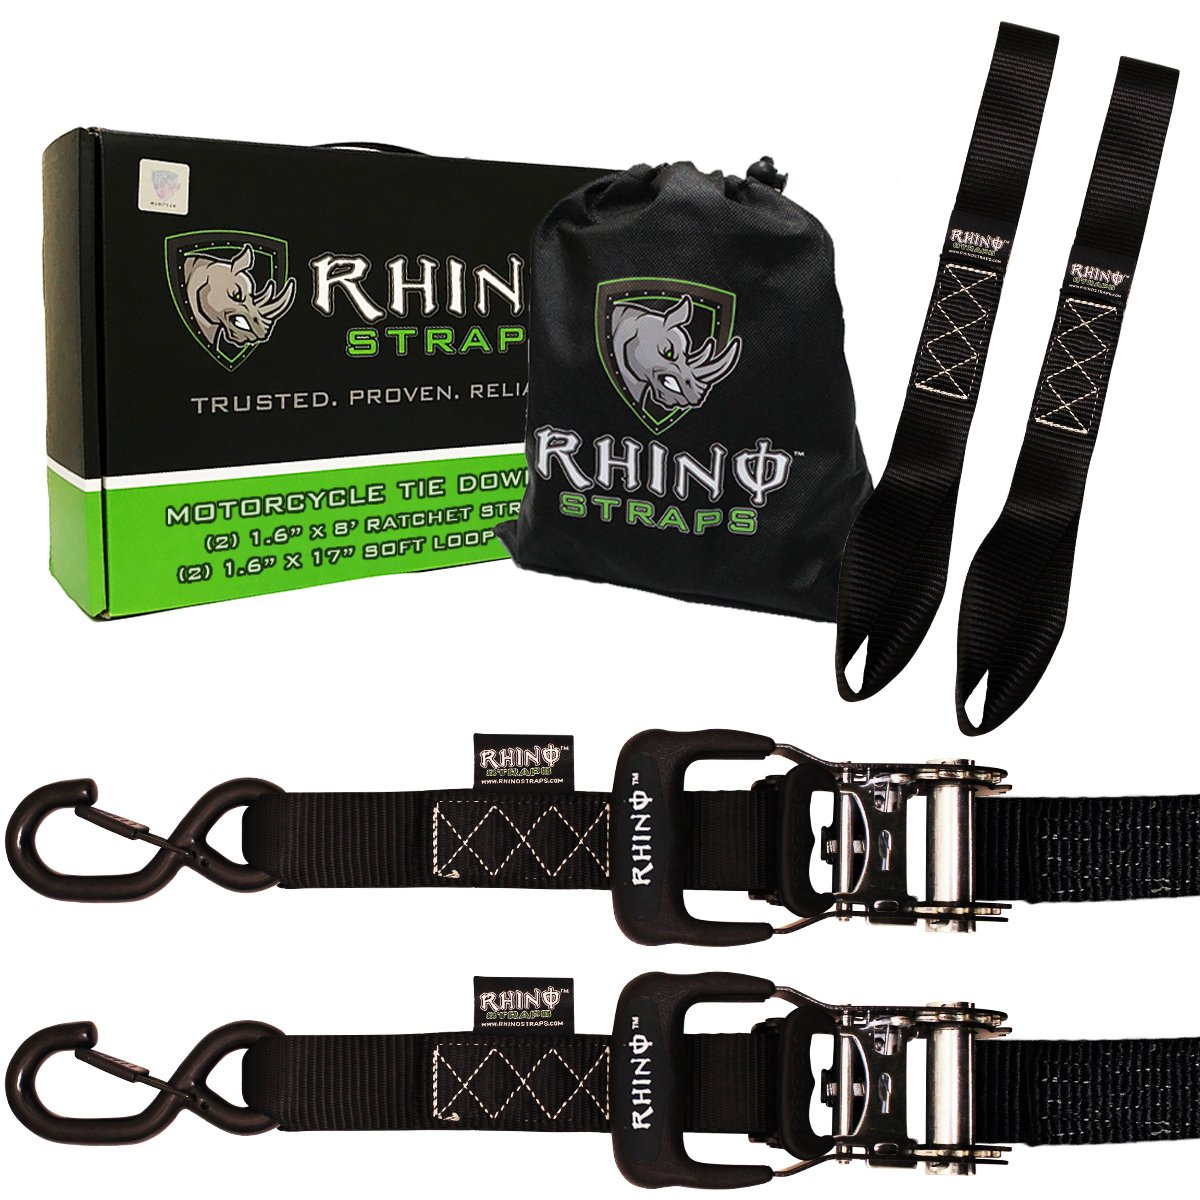 RHINO USA Ratchet Straps Motorcycle Tie Down Kit, 5,208 Break Strength - Includes (2) Heavy Duty 1.6'' x 8' Rachet Tiedowns with Padded Handles & Coated Chromoly S Hooks + (2) Soft Loop Tie-Downs…